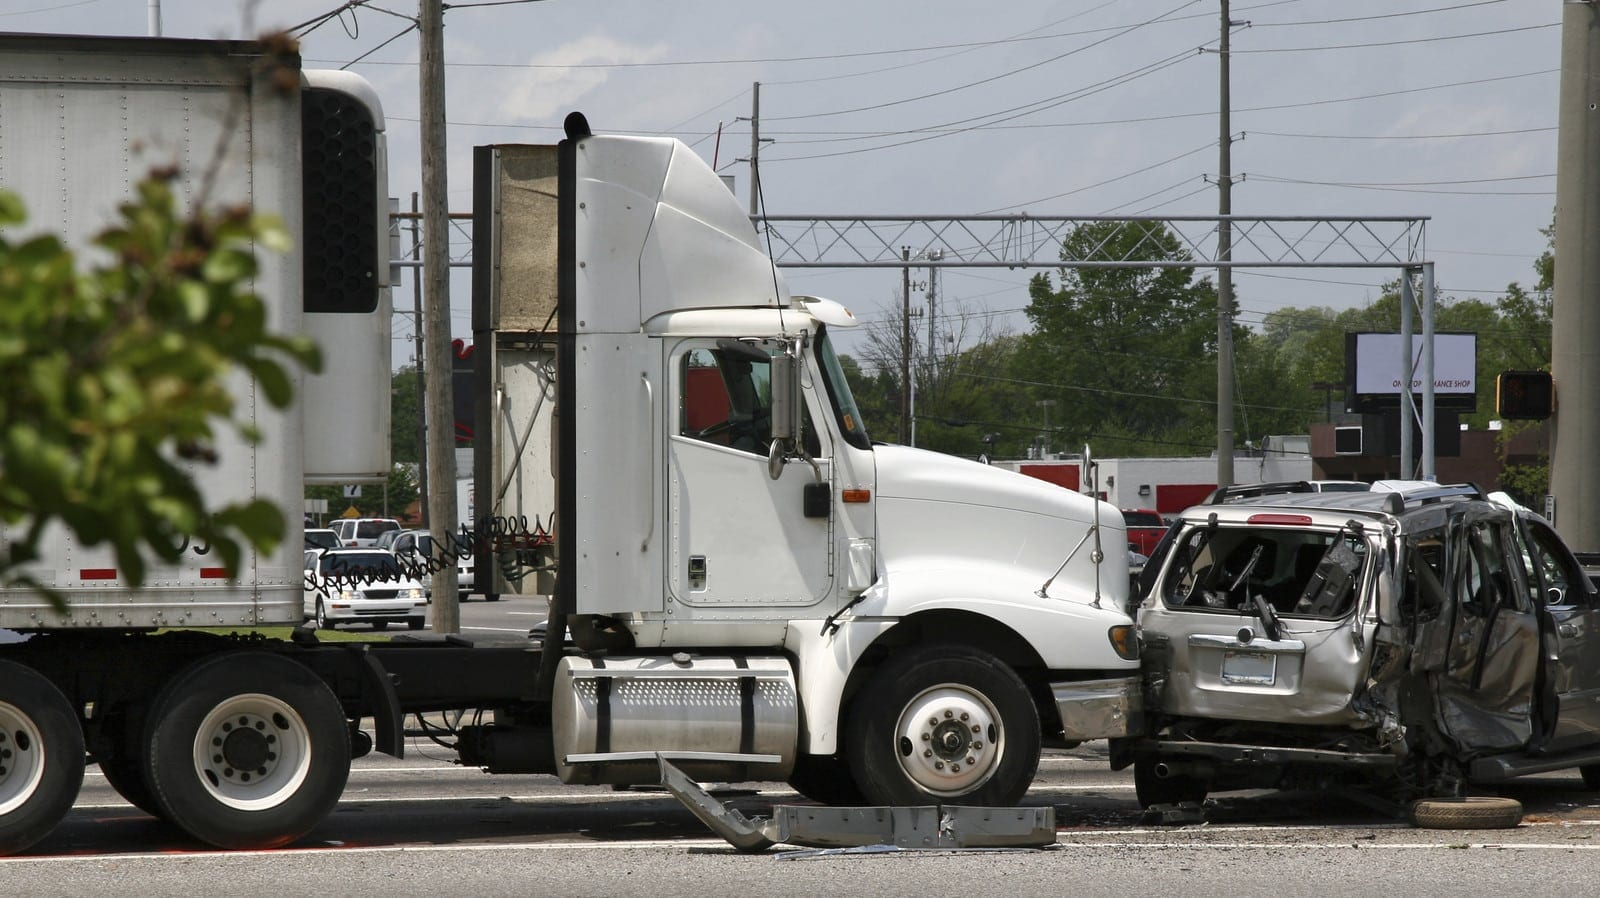 18-wheeler Truck Accident With Smaller Vehicle Stock Photo